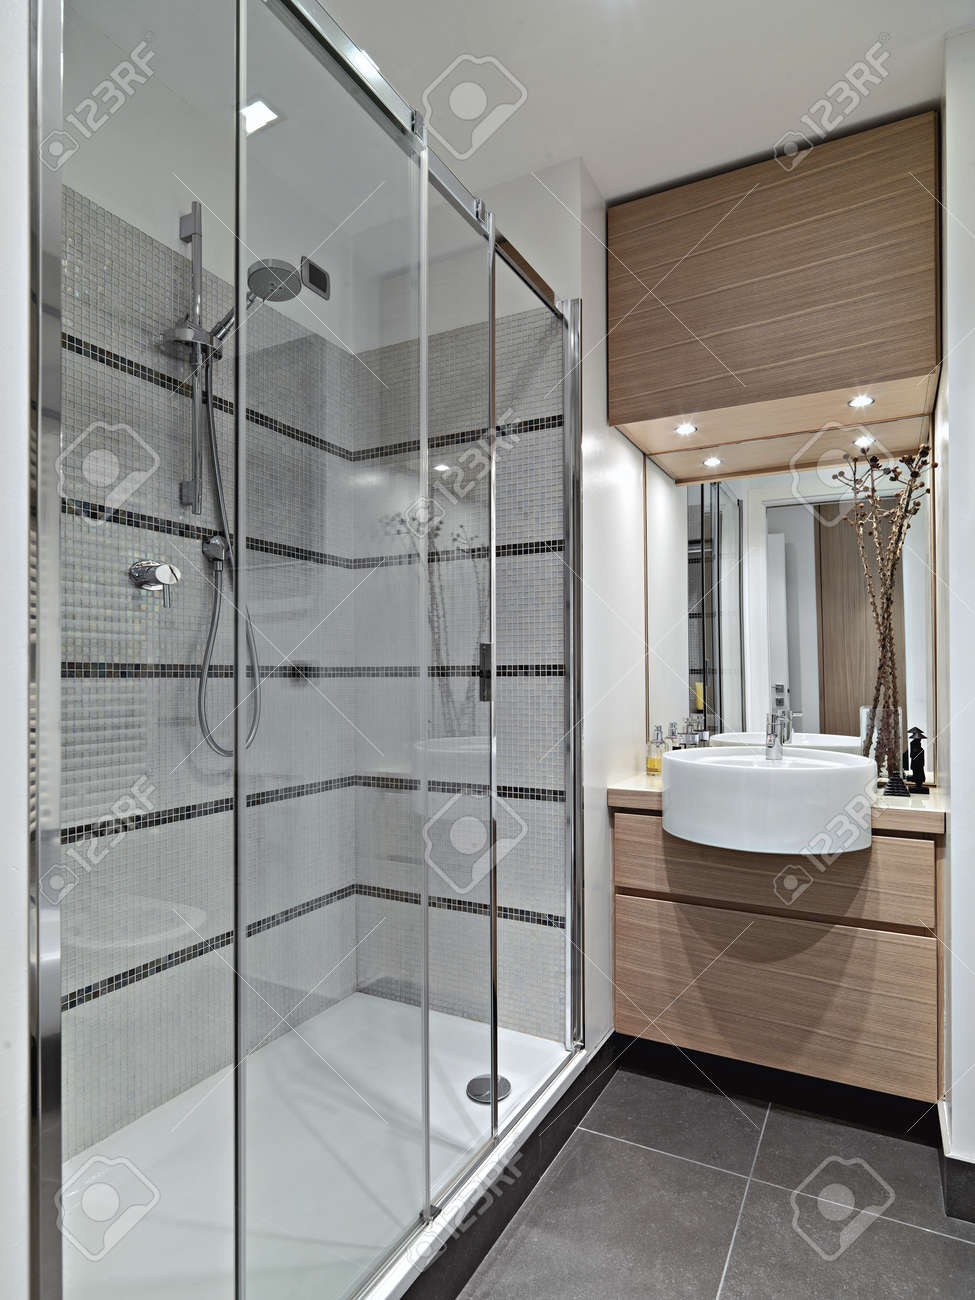 Interior View Of A Modern Bathroom With Glass Shower Cubicle Stock ...